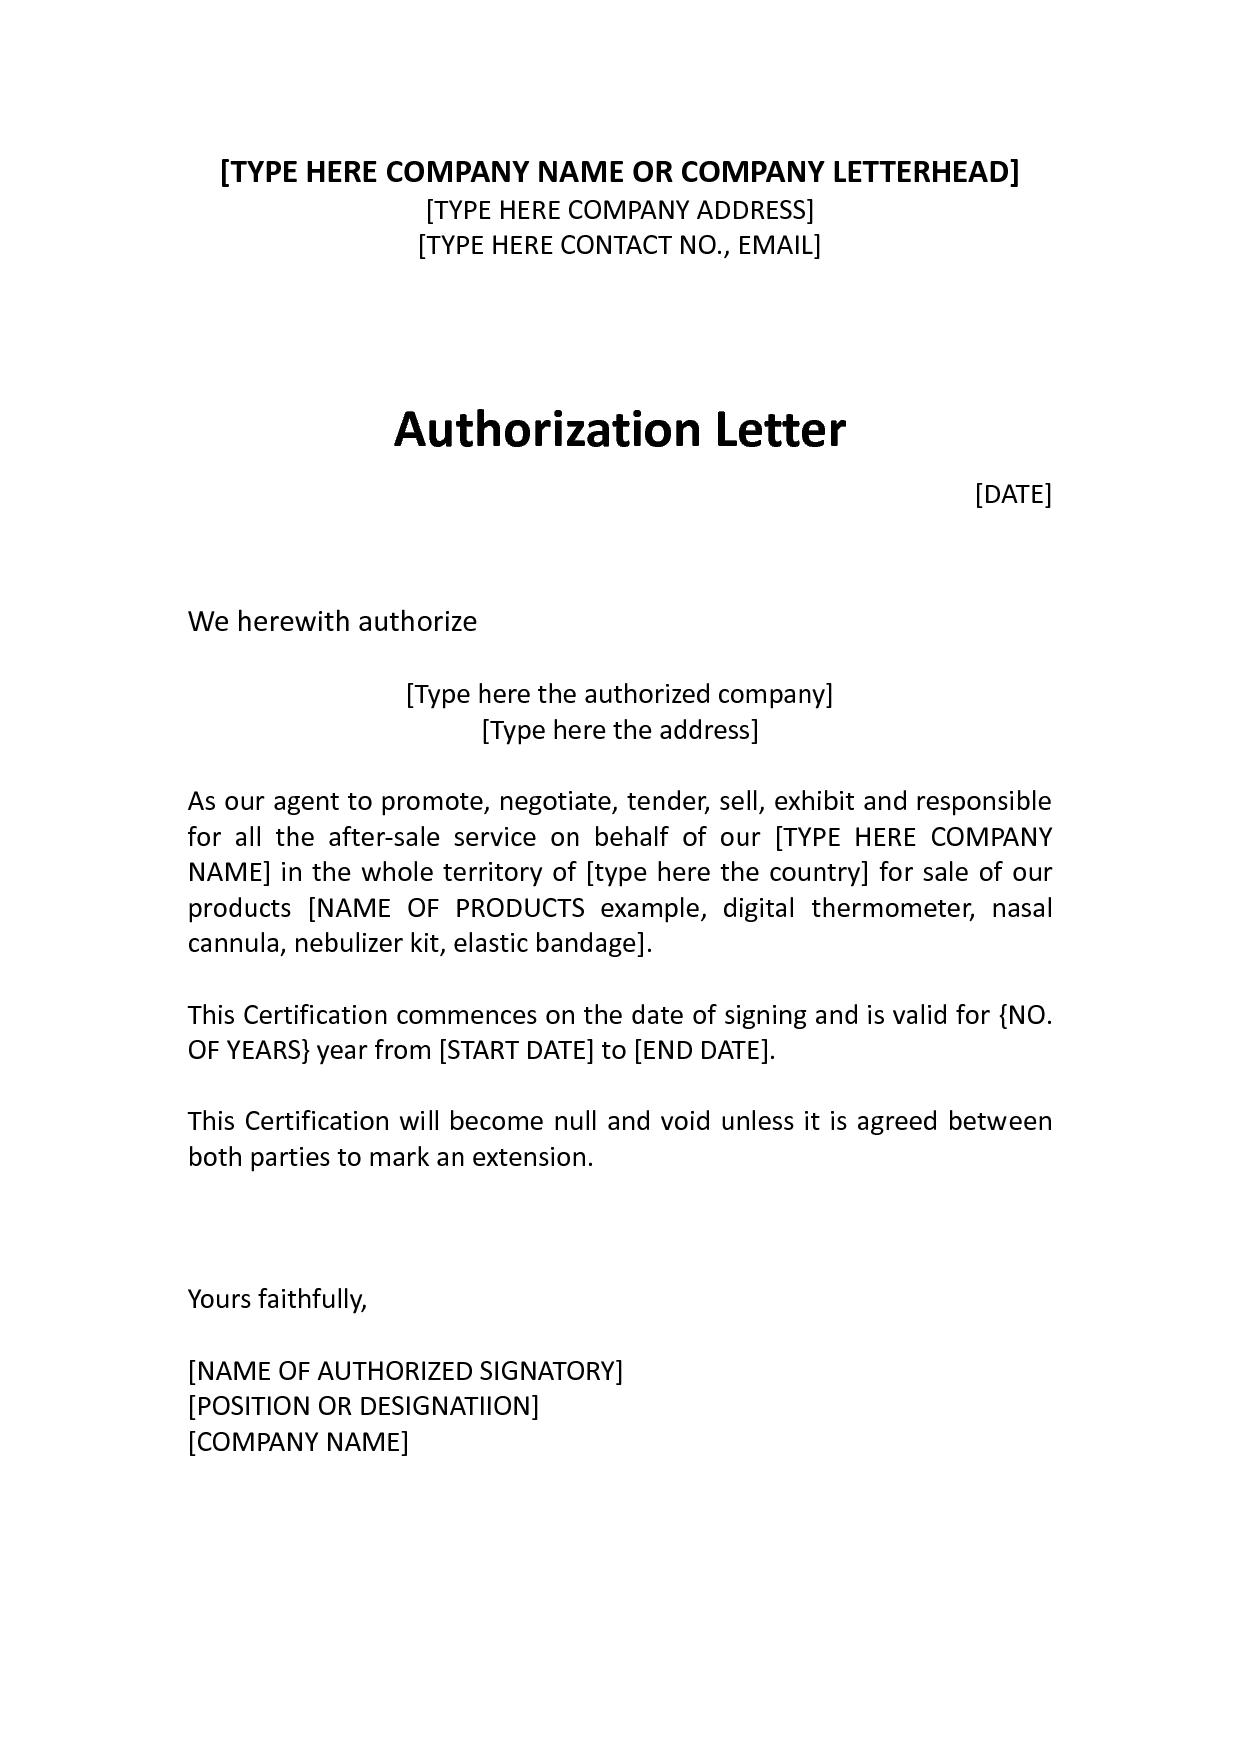 proof of loss of coverage letter template example-Authorization Distributor Letter sample distributor dealer authorization letter given by a pany to its distributor or dealer 15-r